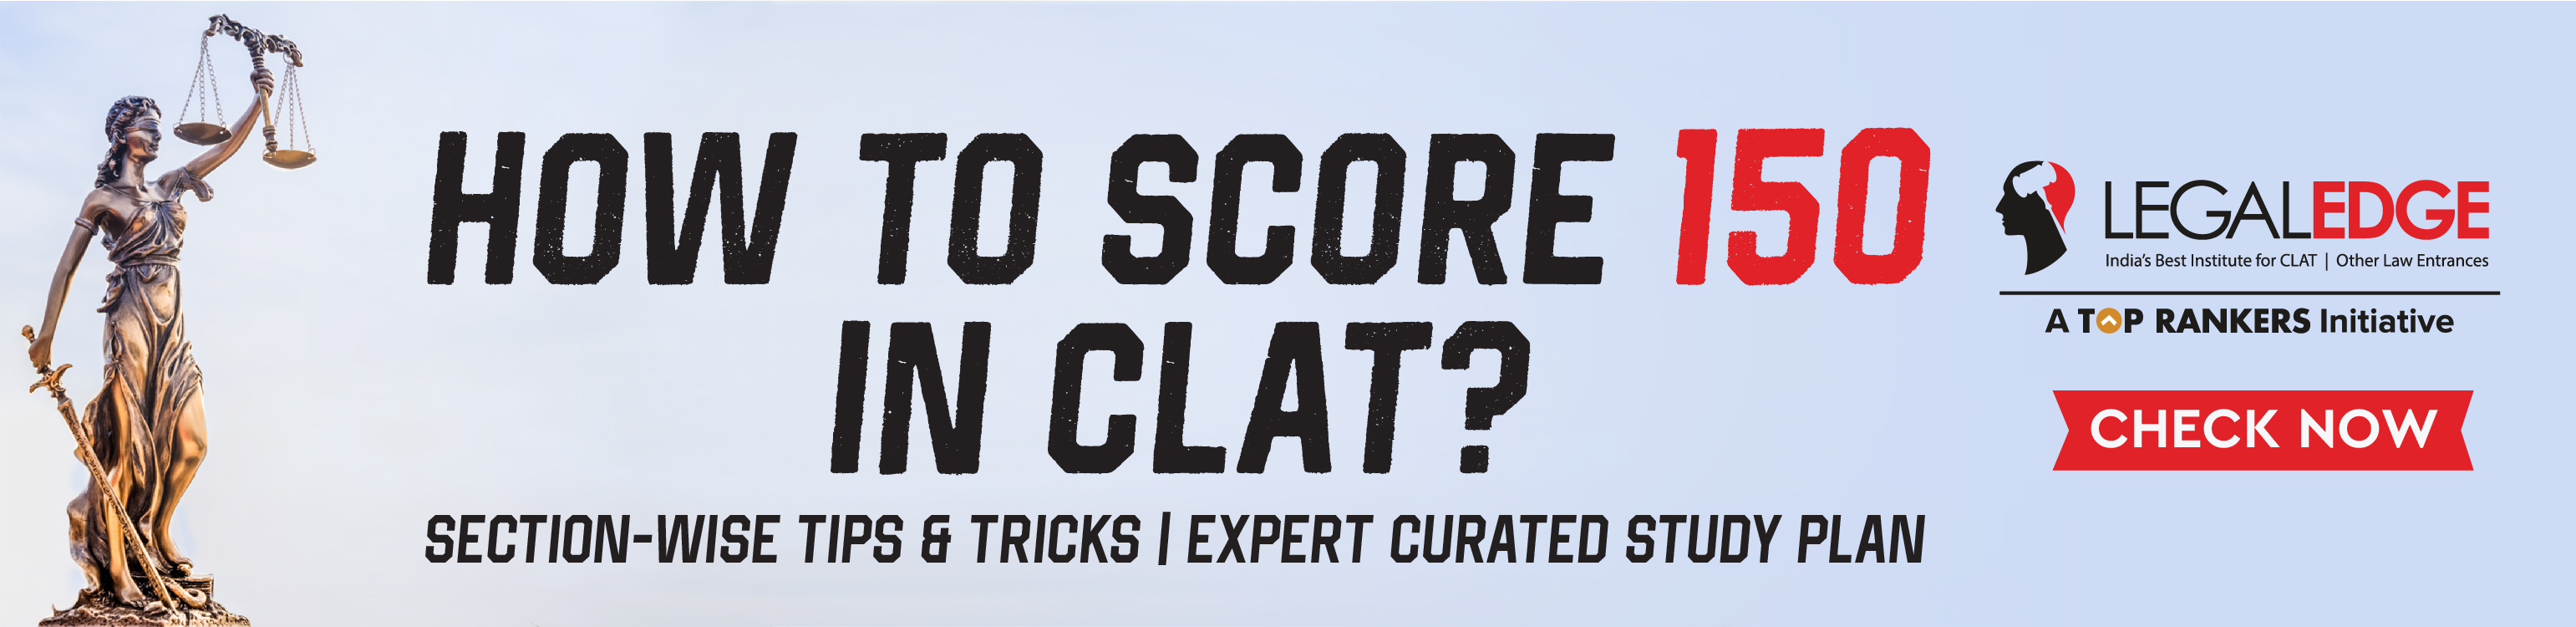 how to score 150 in clat